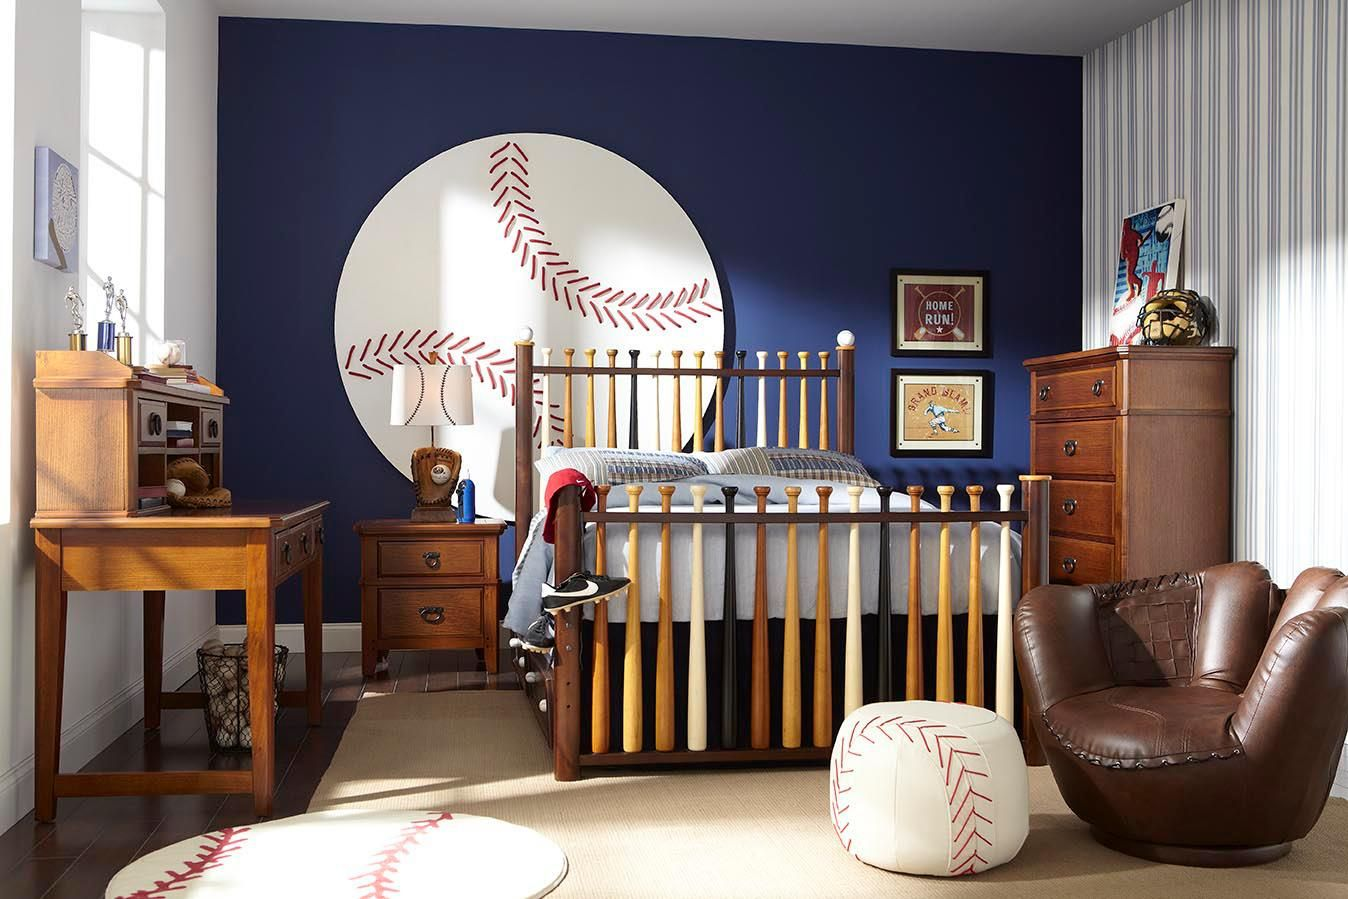 This Baseball Themed Kids Room Is Amazing